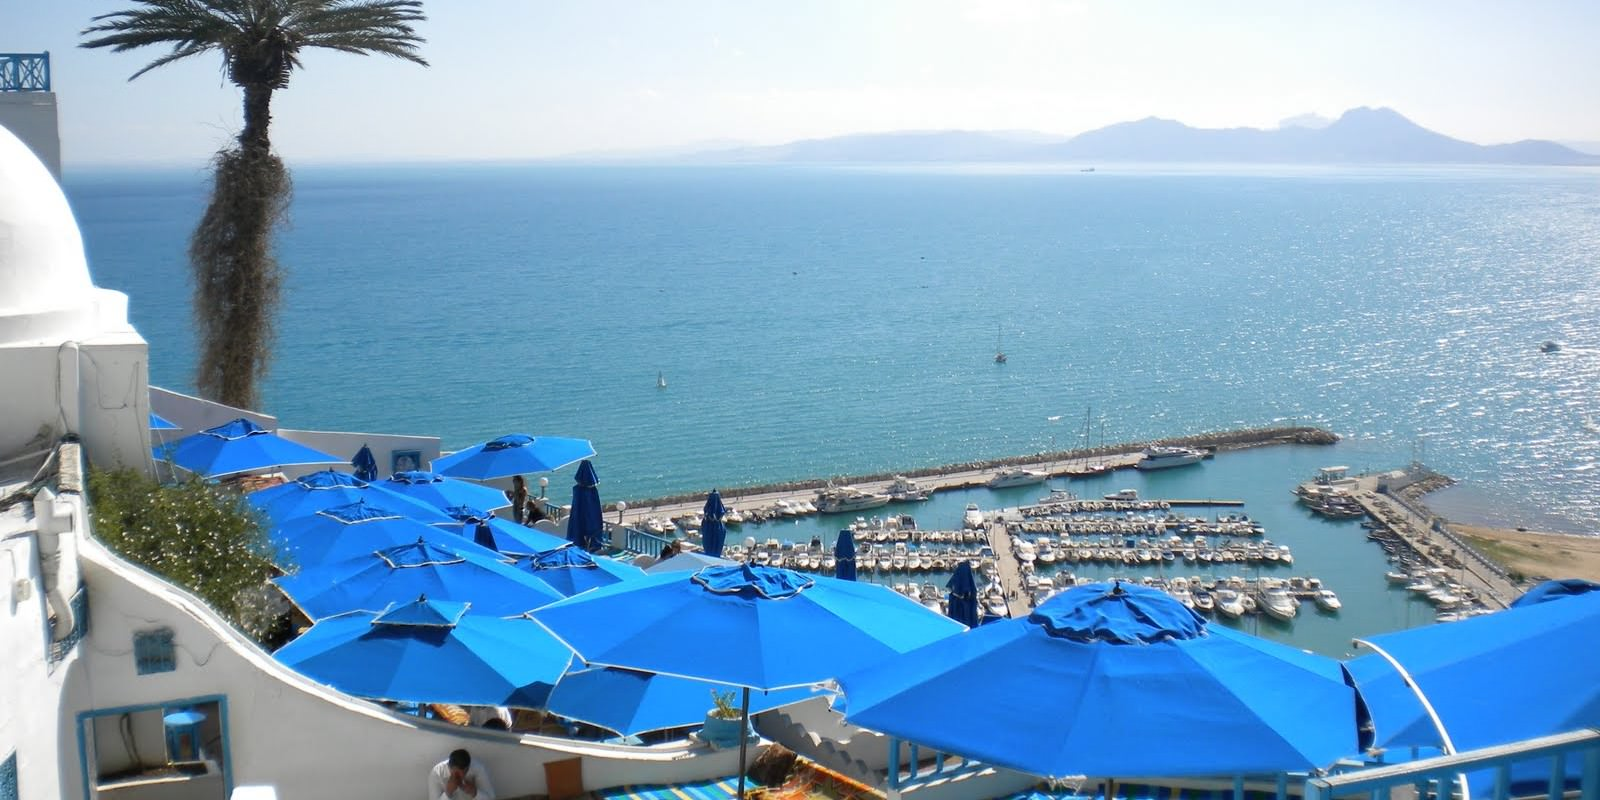 Sidi Bou Said, The Blue and White Treasure!